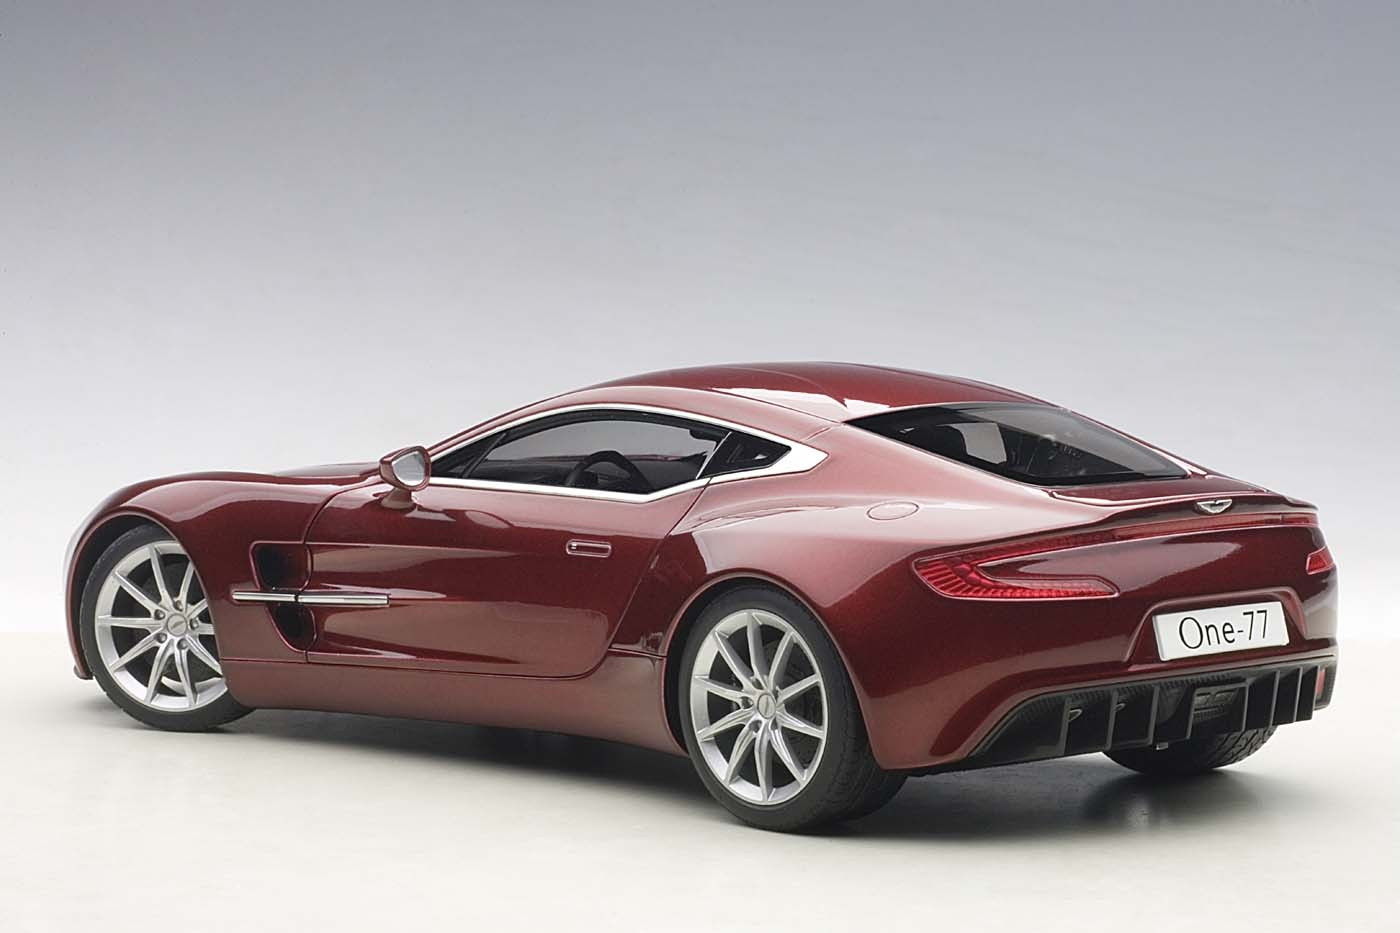 autoart die cast model red aston martin one 77 diavolo. Black Bedroom Furniture Sets. Home Design Ideas